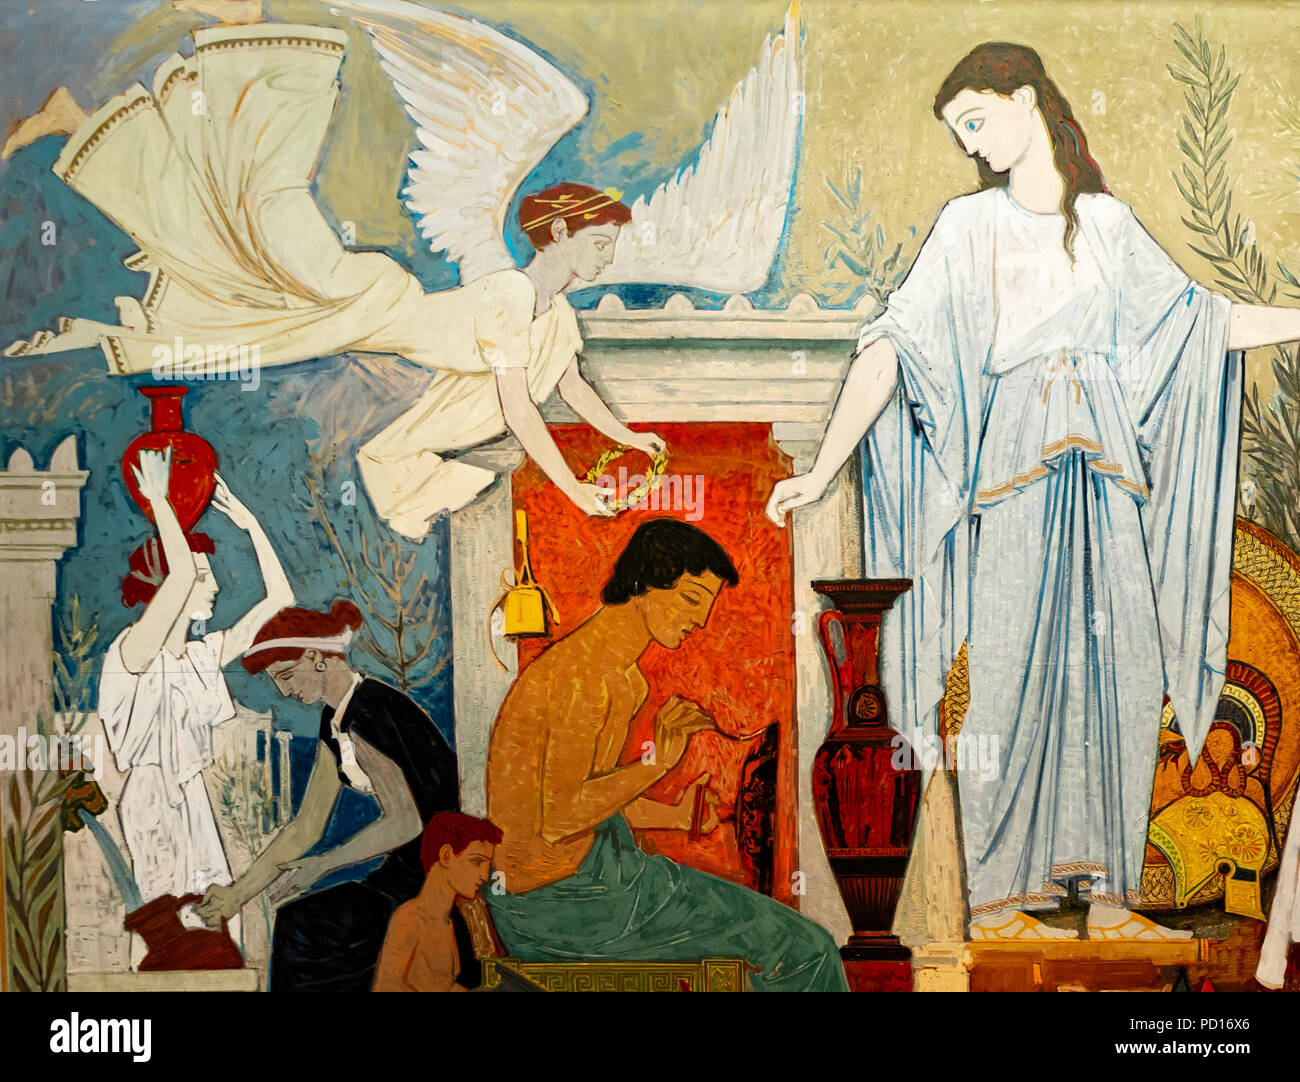 The Greek Spirit, Unlabled painting of winged gods, servants, and Athena. - Stock Image